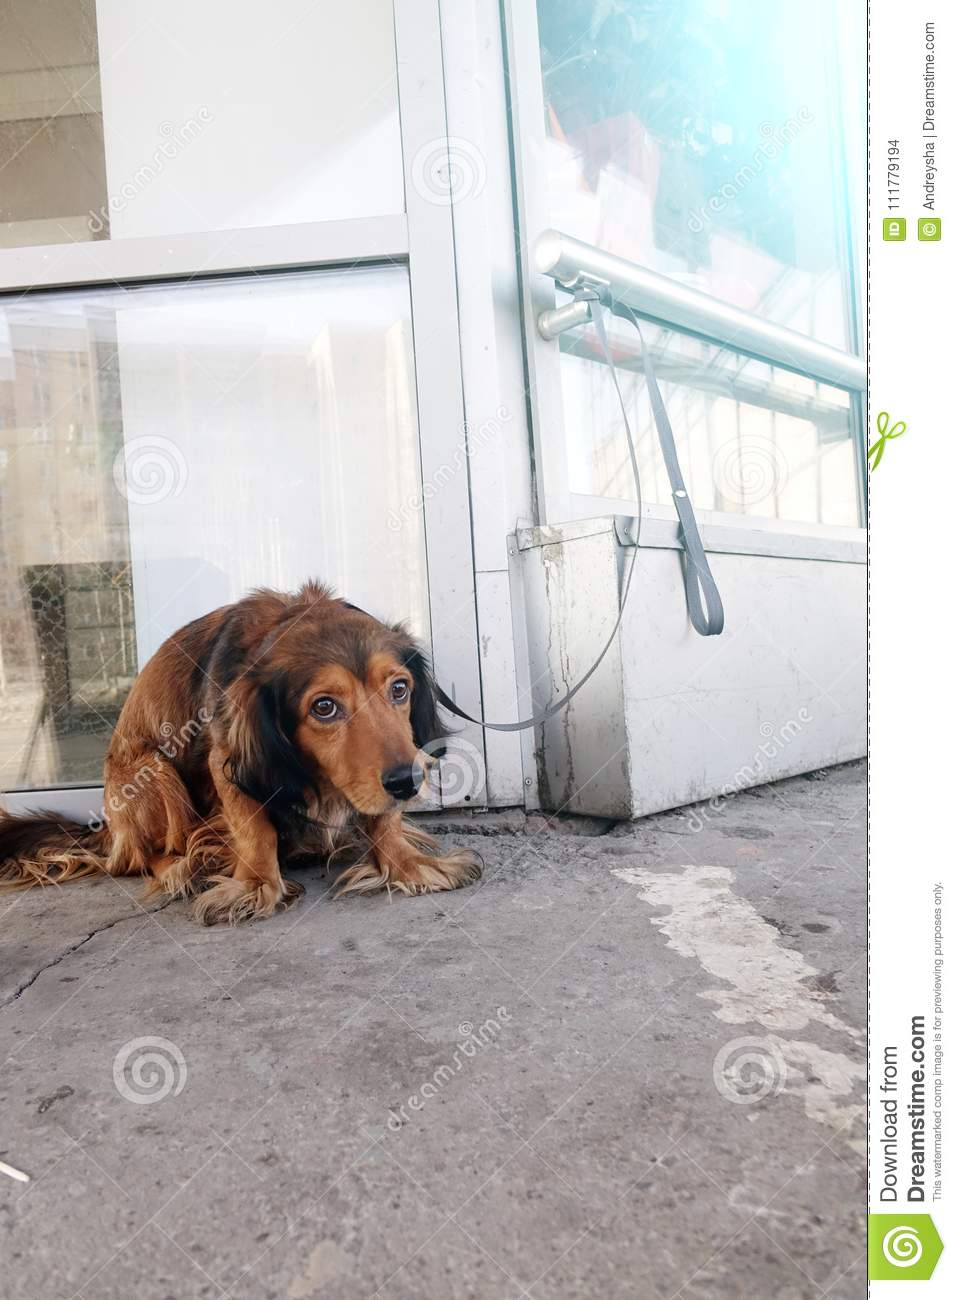 The dog is tied with a collar to the building on the street.